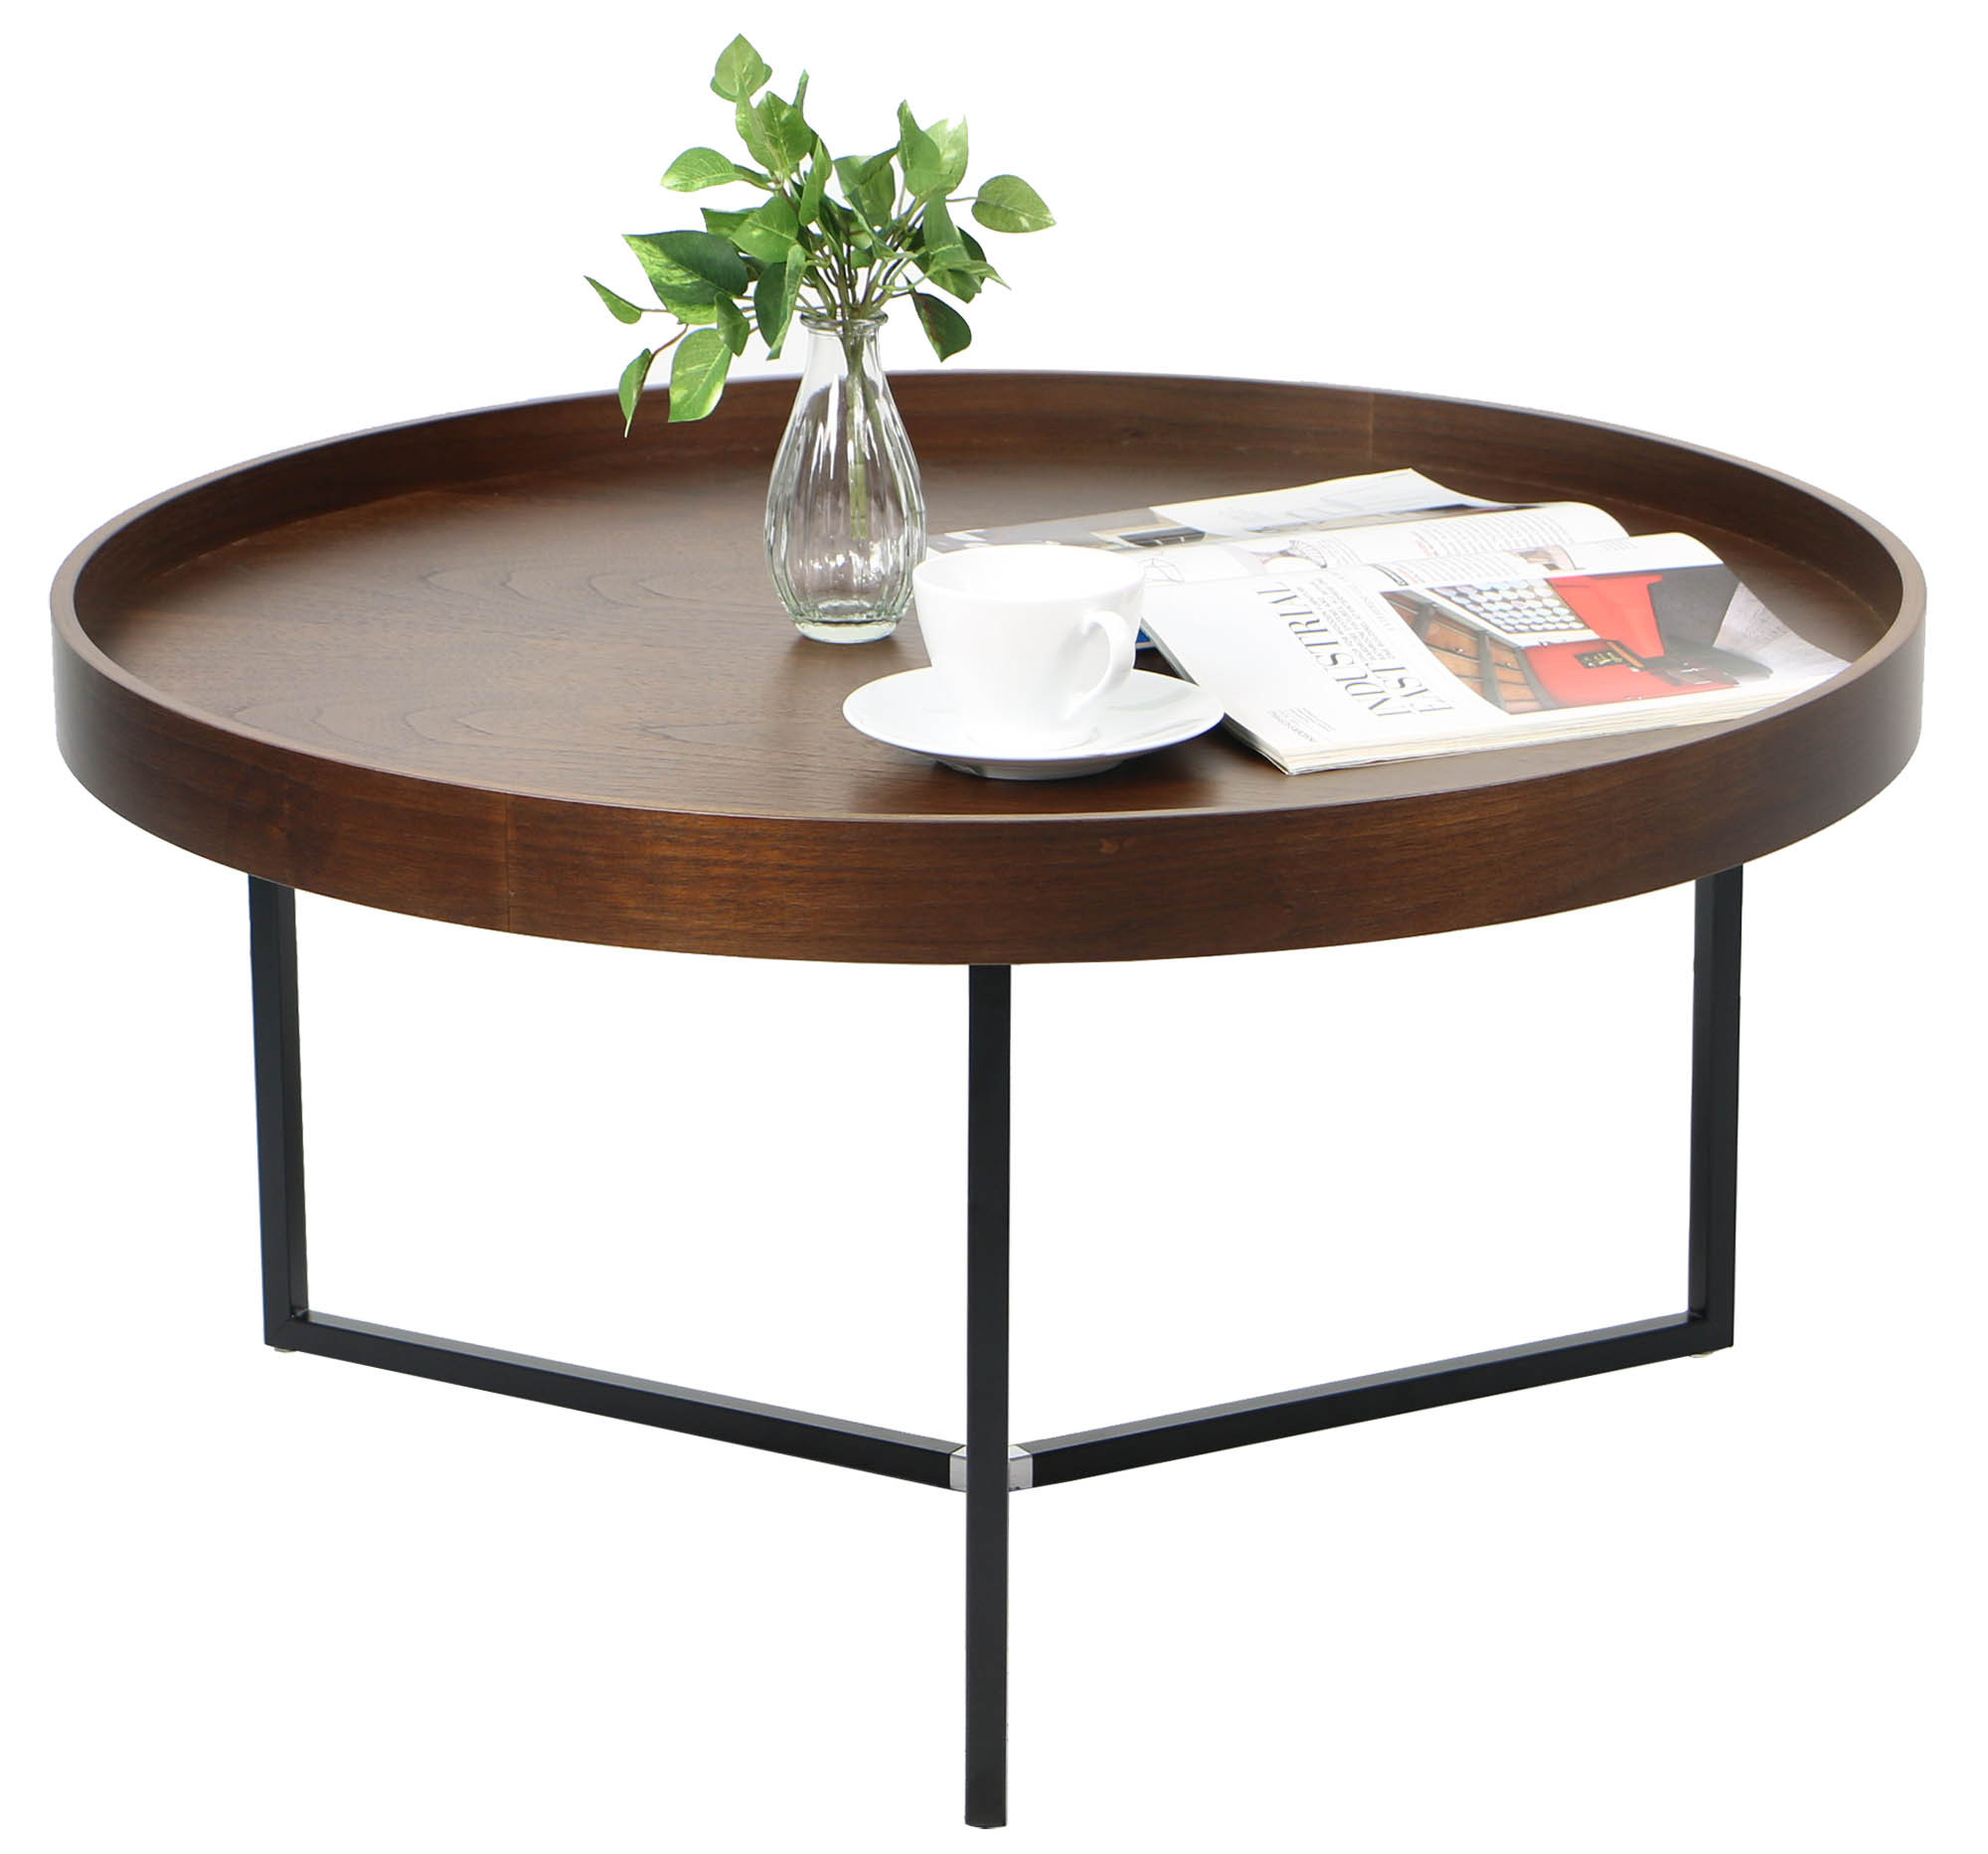 Barrie walnut round tray table coffee tables living for Living room coffee table